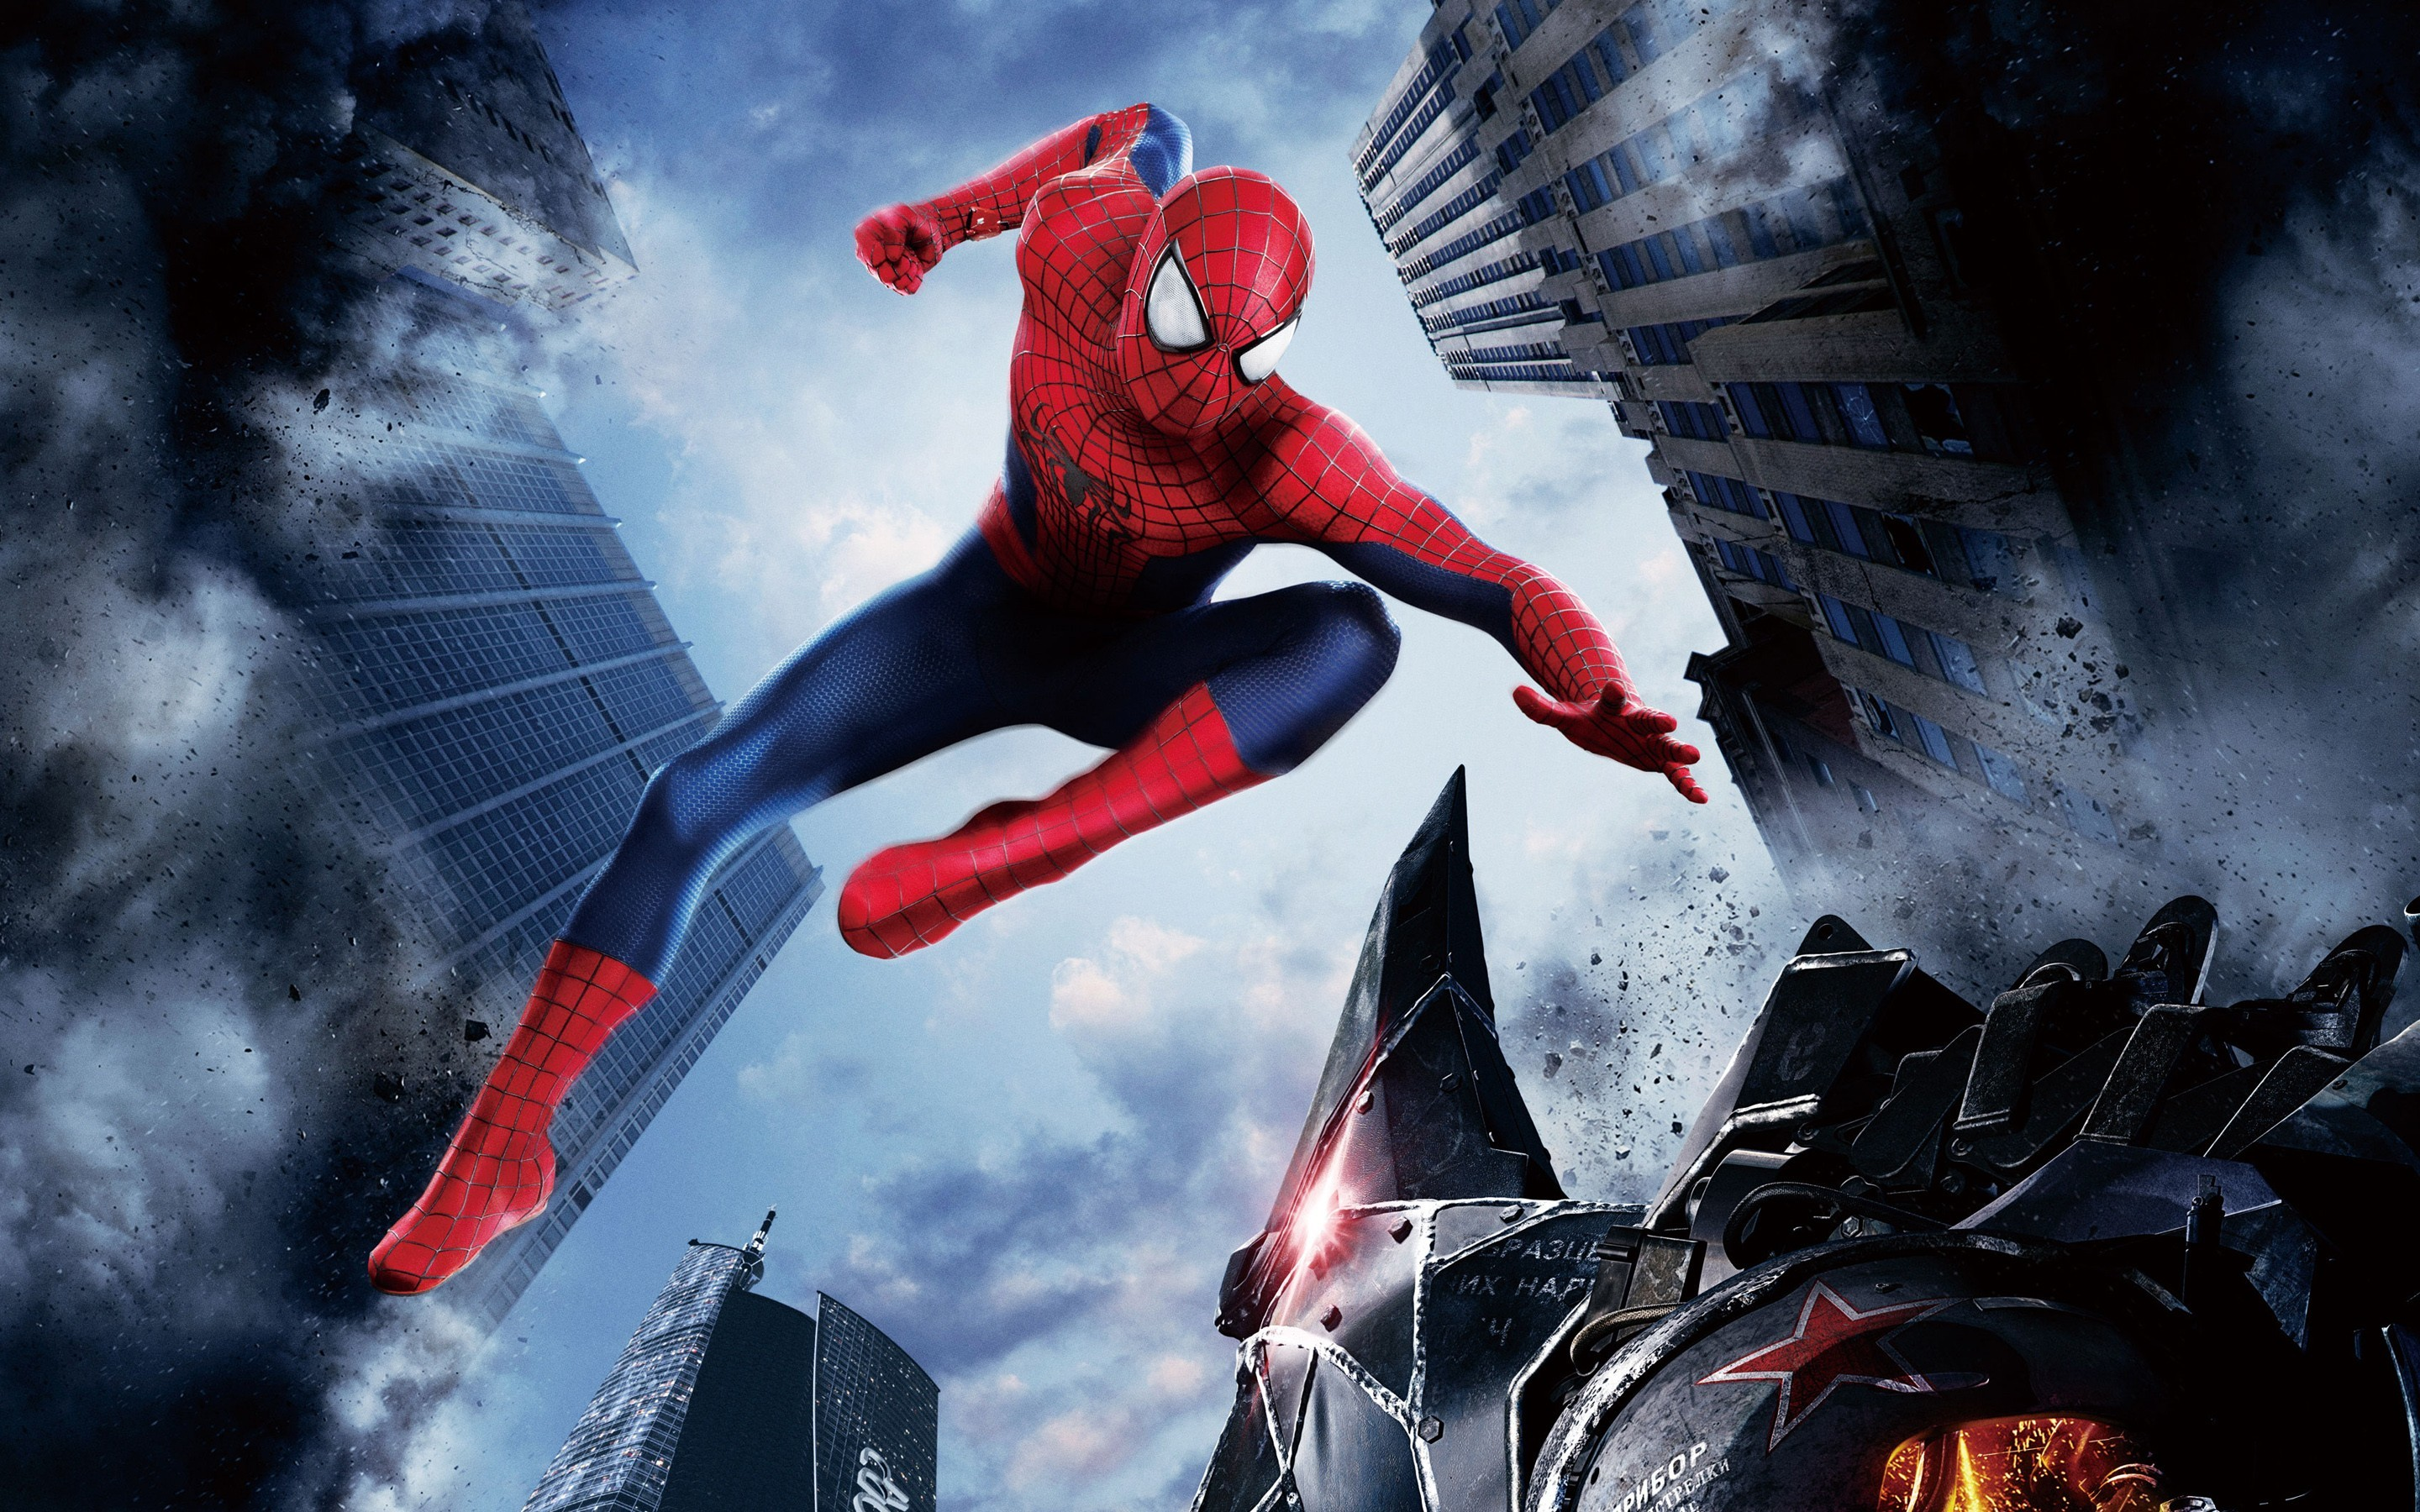 2880x1800  The Amazing Spider Man 2 2014 Movie Wallpapers | HD Wallpapers ·  Download ... spiderman_homecoming-movie-2017-wallpaper-hd .